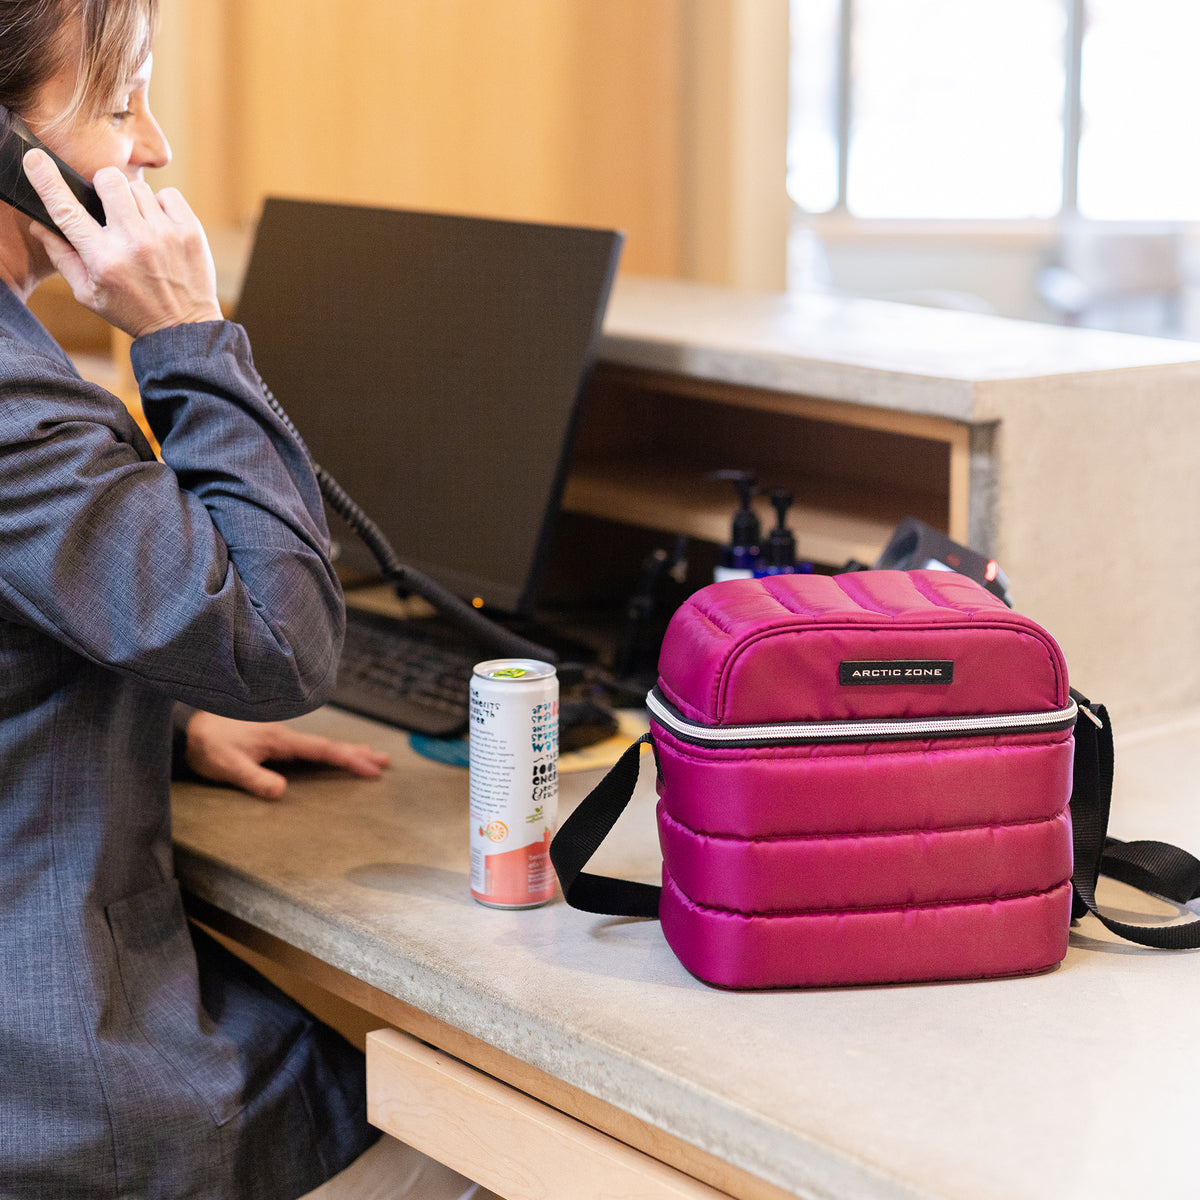 Arctic Zone® Crossbody Quilted Lunch Pack - Red Violet - Lifestyle, bringing lunch to work